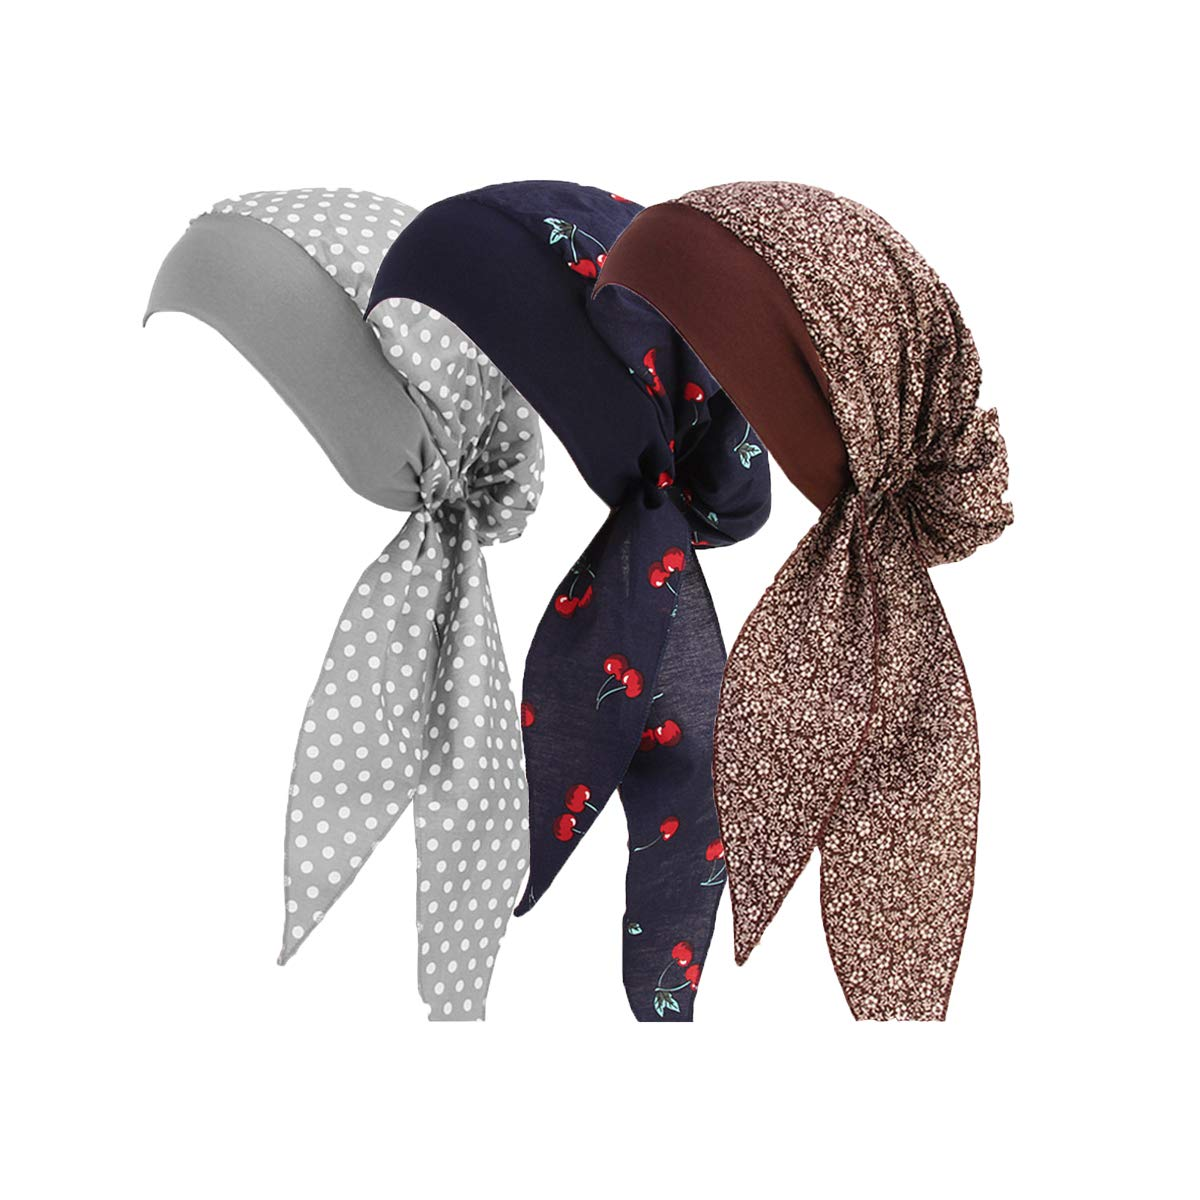 Ever Fairy Vintage Elastic Wide Band Cotton Multifunction Hair Loss Wrap Print Bonnet Chemo Women Head Scarf Turbans Night Sleep Hat Cap (3 Color Pack C)